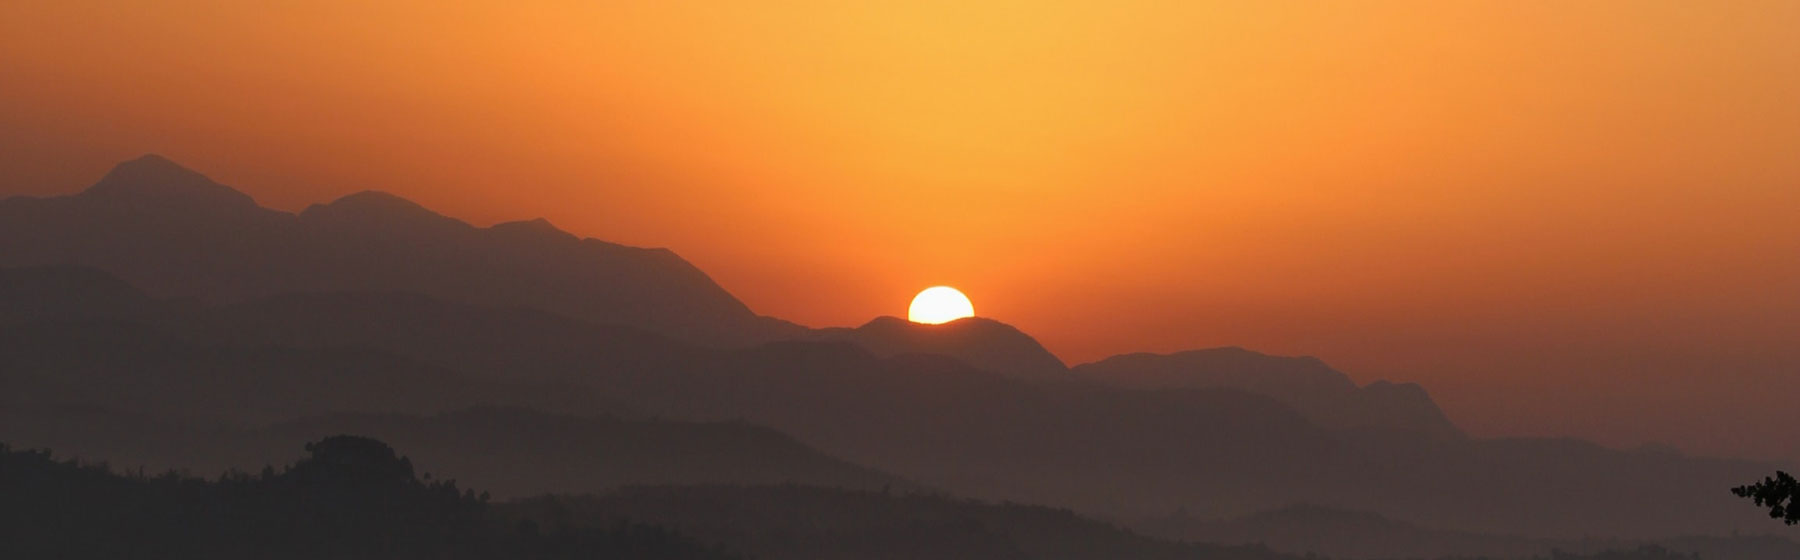 The sun rises over the mountains..